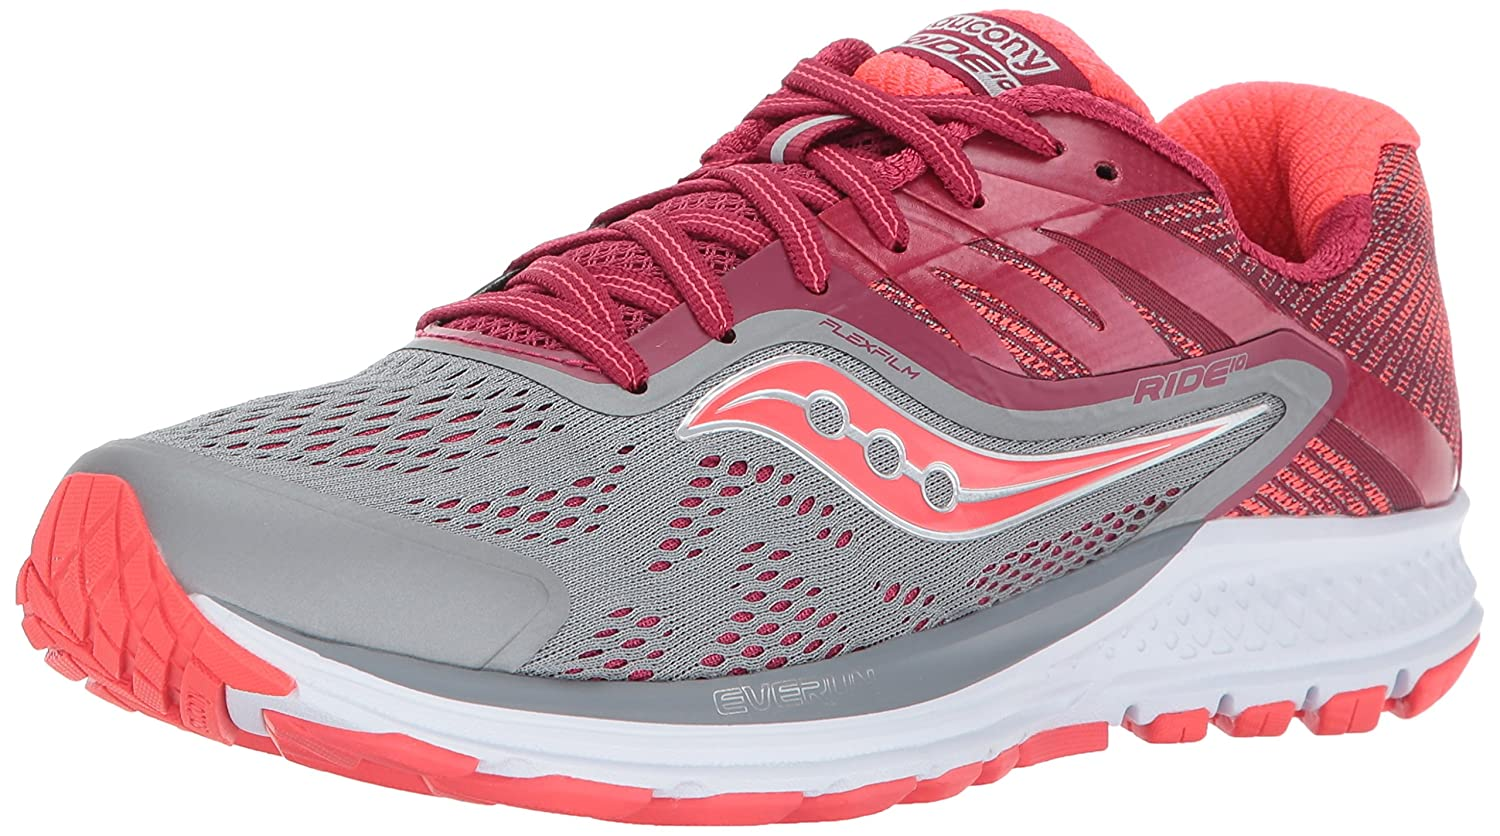 Saucony Women's Ride 10 Running-Shoes B01NBNCLIX 10.5 B(M) US|Grey Berry